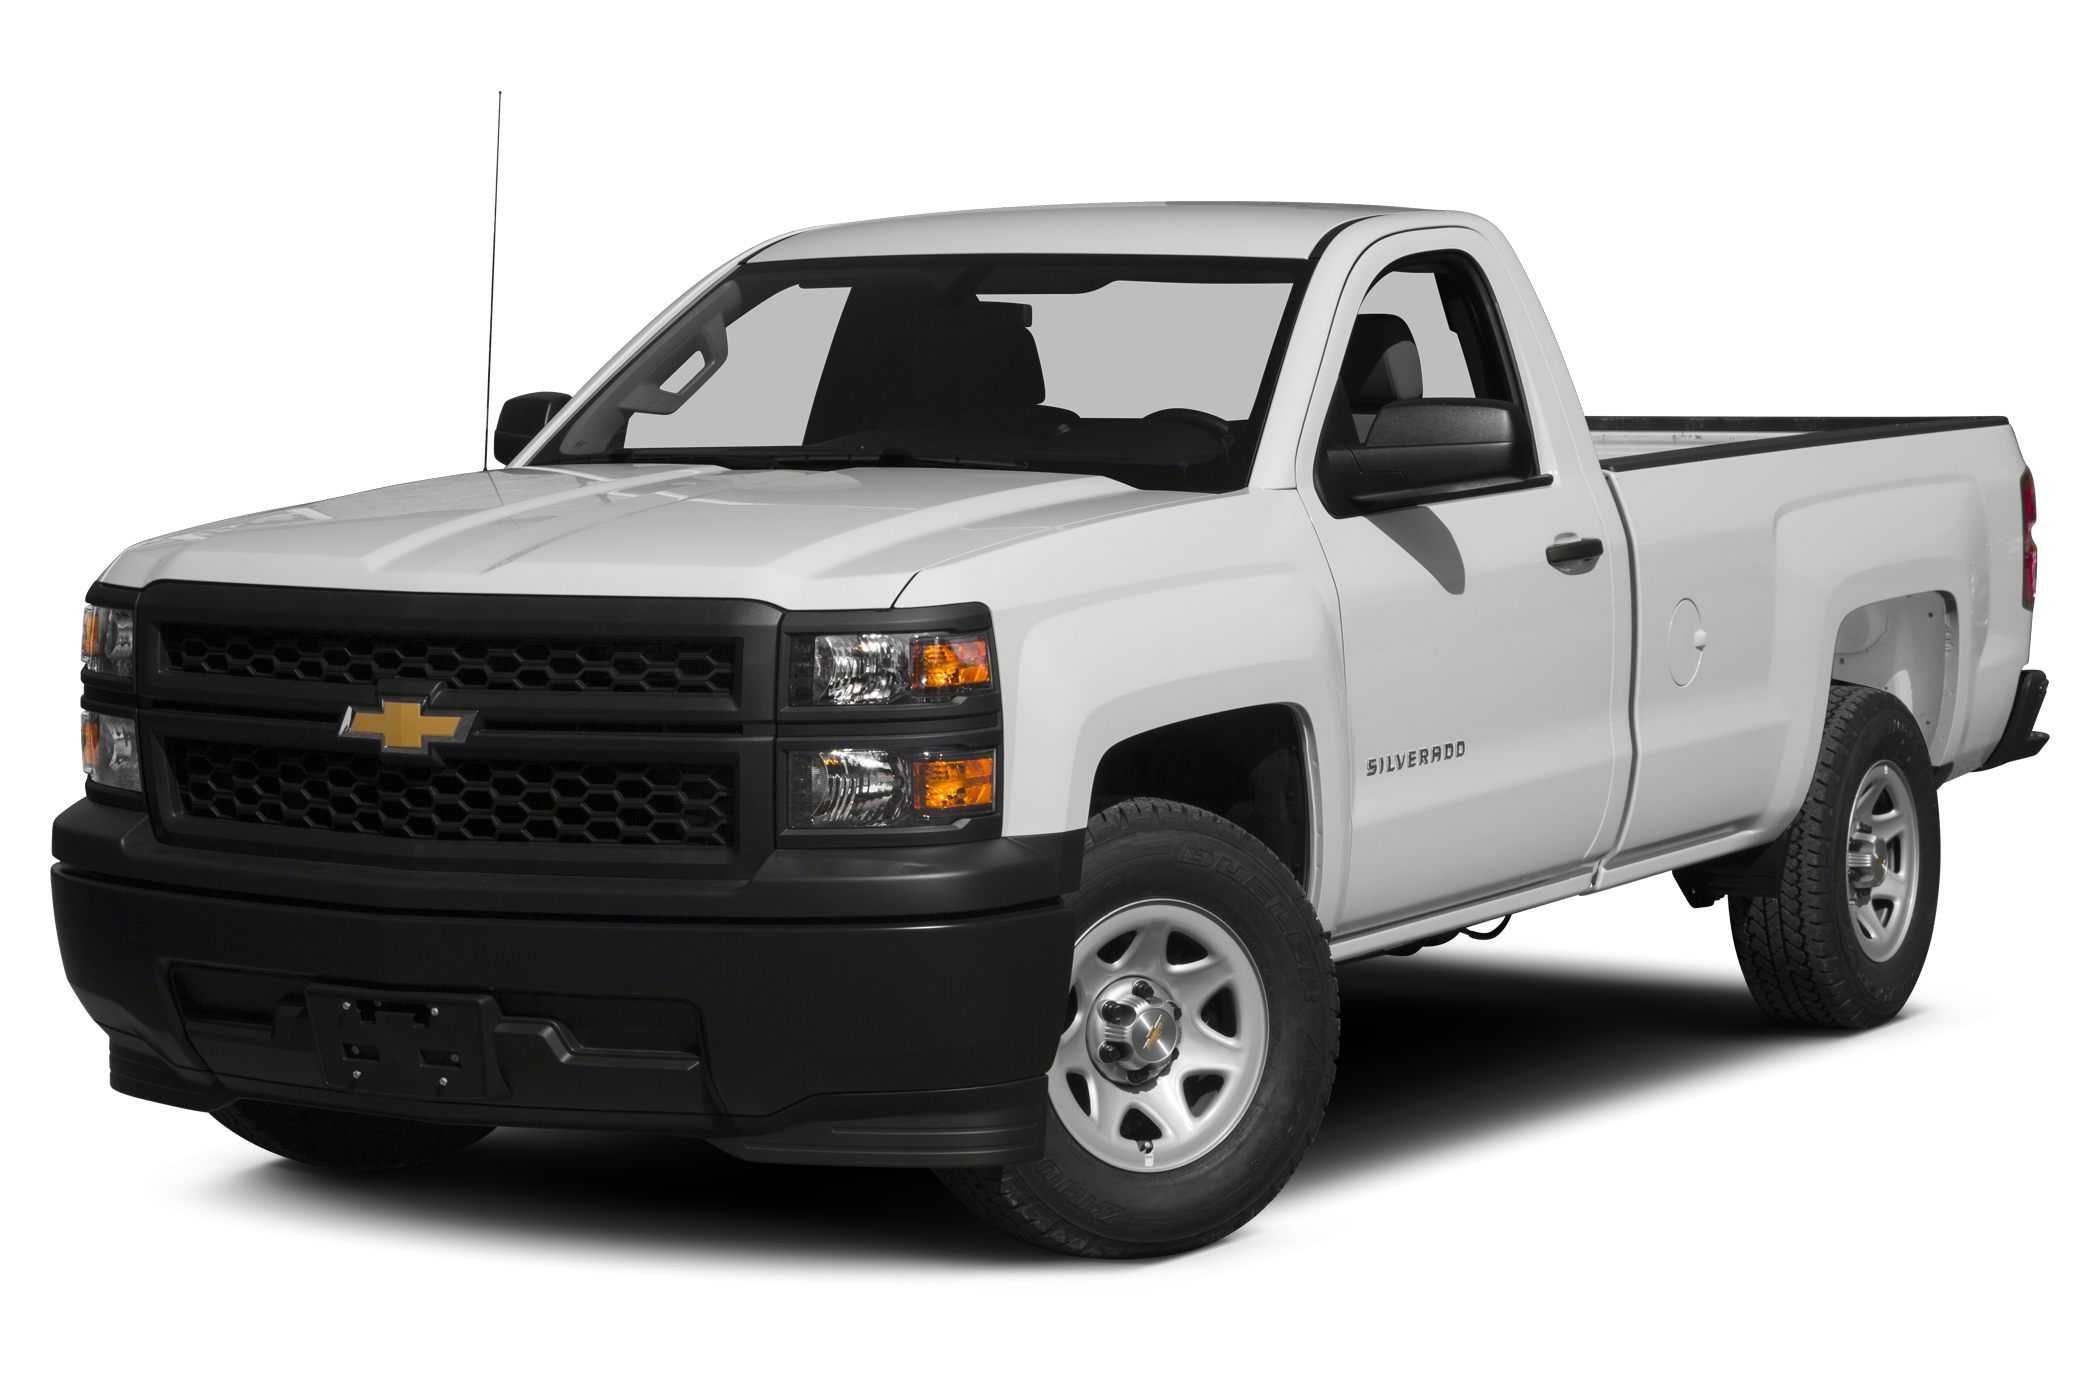 2014 Chevrolet Silverado 1500 1LT Crew Cab Pickup for sale in Superior for $44,035 with 0 miles.